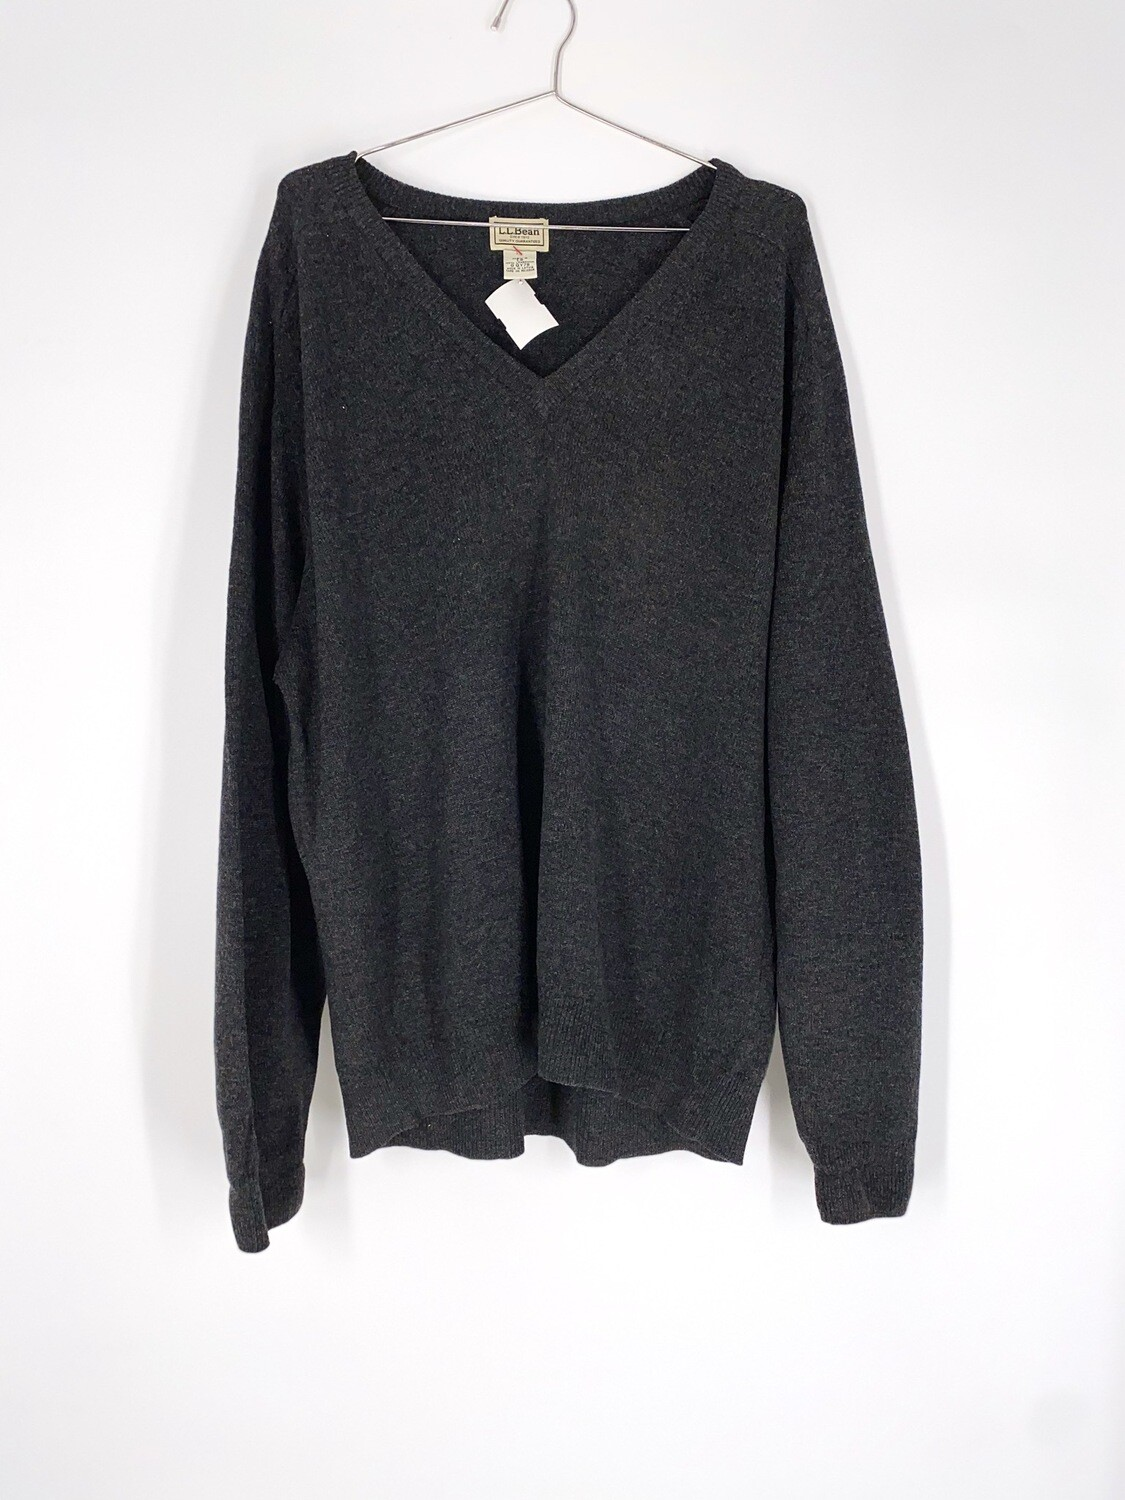 Wool V-Neck Sweater Size L